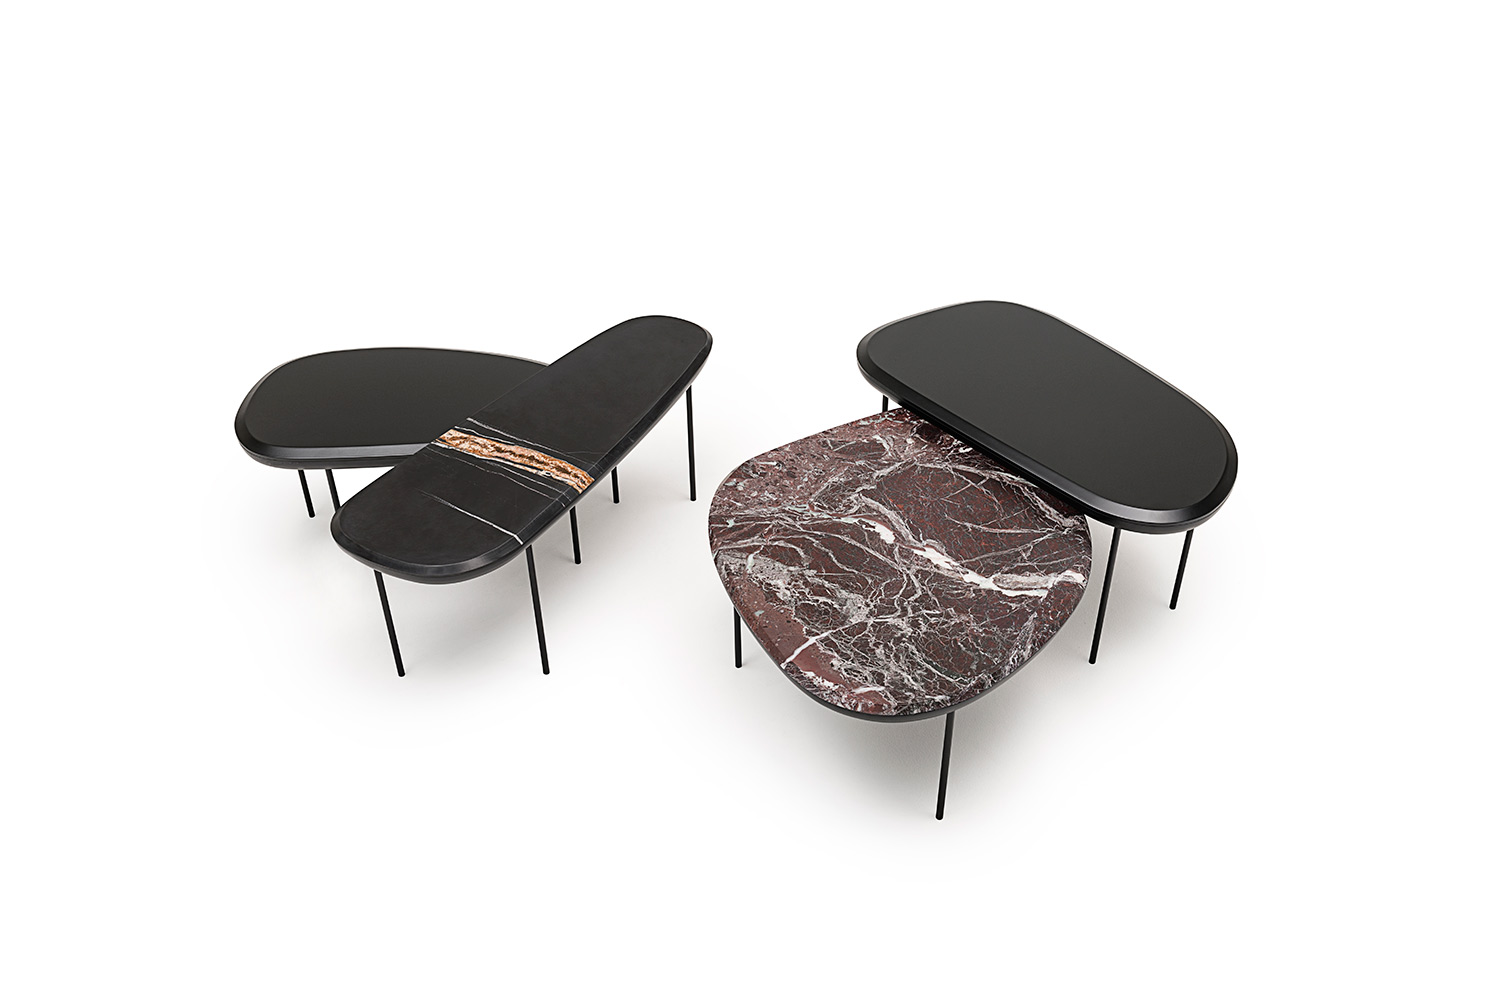 Divani Definition Pebble Low Tables For Living Divani Lanzavecchia Wai Design